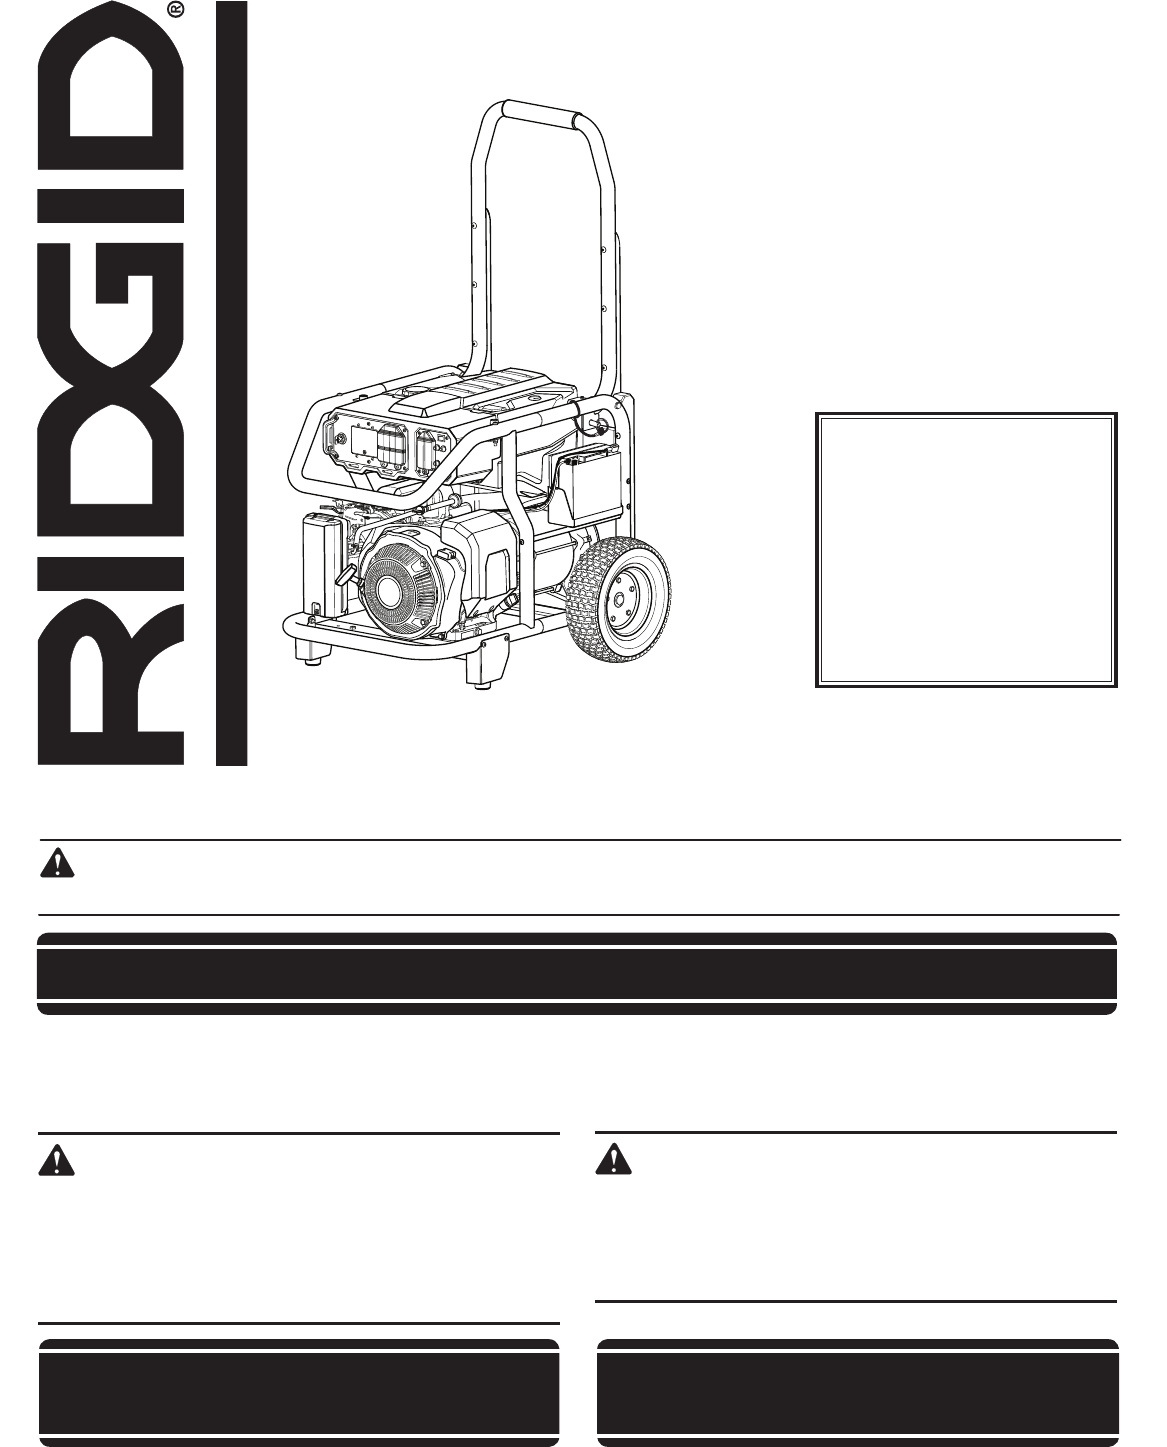 ridgid portable generator rd8000 user guide manualsonline com